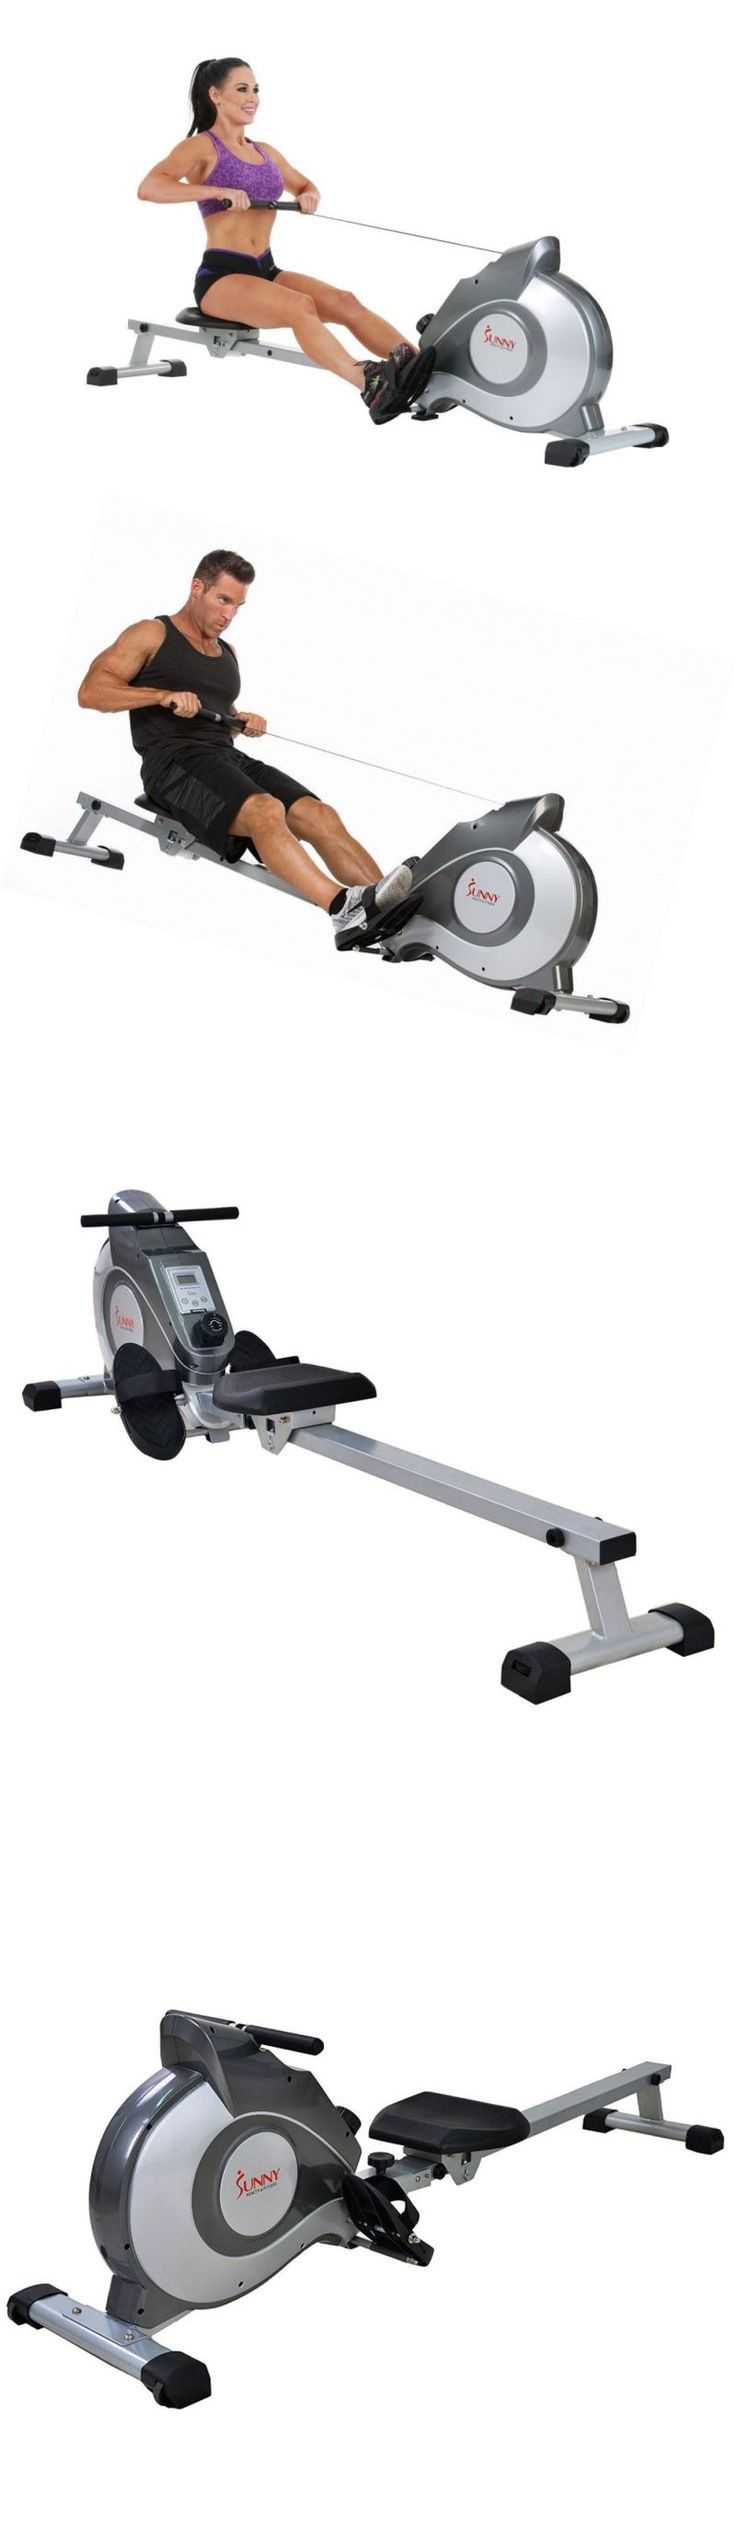 Rowing Machines 28060: New Sunny Health And Fitness Magnetic Rowing Machine Cardio Training Gym Equipment BUY IT NOW ONLY: $250.99